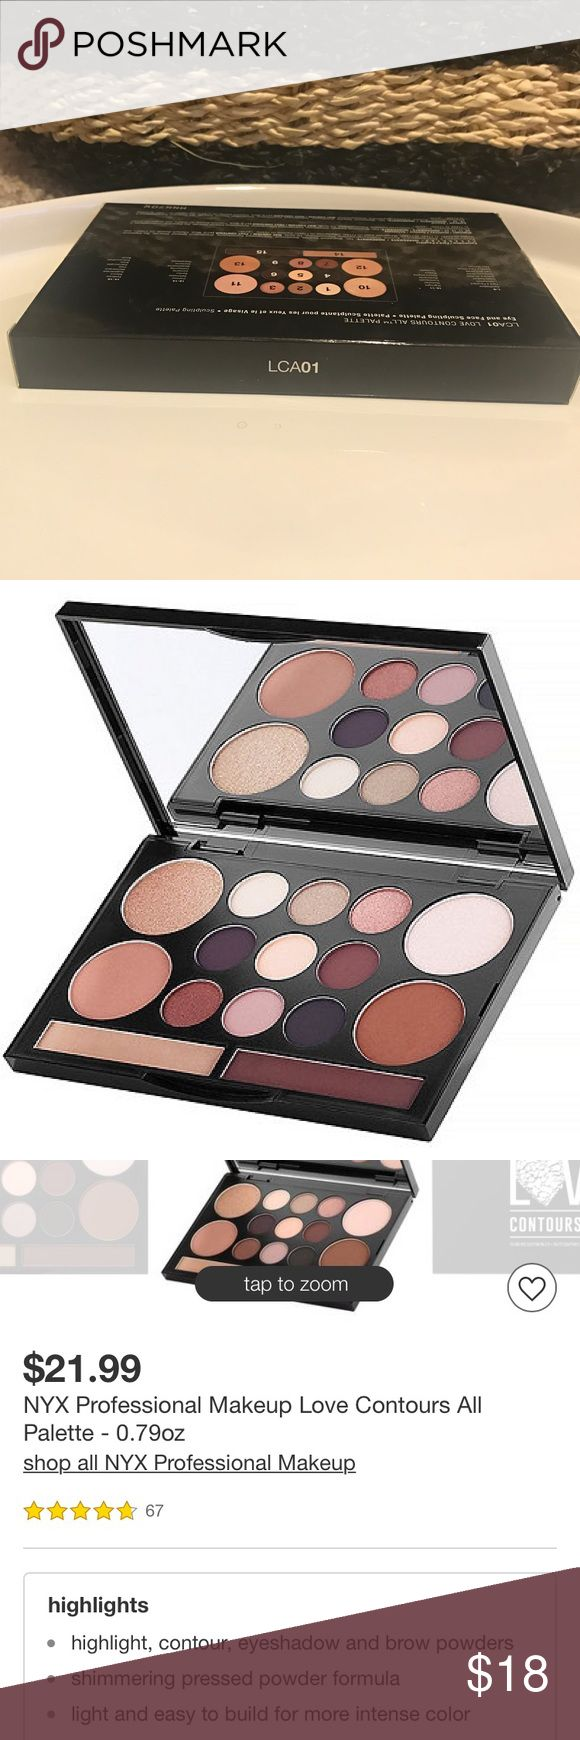 """NEW! NYX Love Contours All Eye + Face Palette New in box, unopened! NYX Professional Makeup """"Love Contours All"""" Eye and Face Sculpting Palette. Top-rated palette! A must-have for any beauty guru.  This uh-mazing NYX Professional Makeup palette has literally everything you need for complete definition. It includes pigmented eyeshadows in edgy, neutral tones, blendable highlighting and contouring shades, and beautiful brow powders. Yes! You can create a whole look using one sleek palette…"""